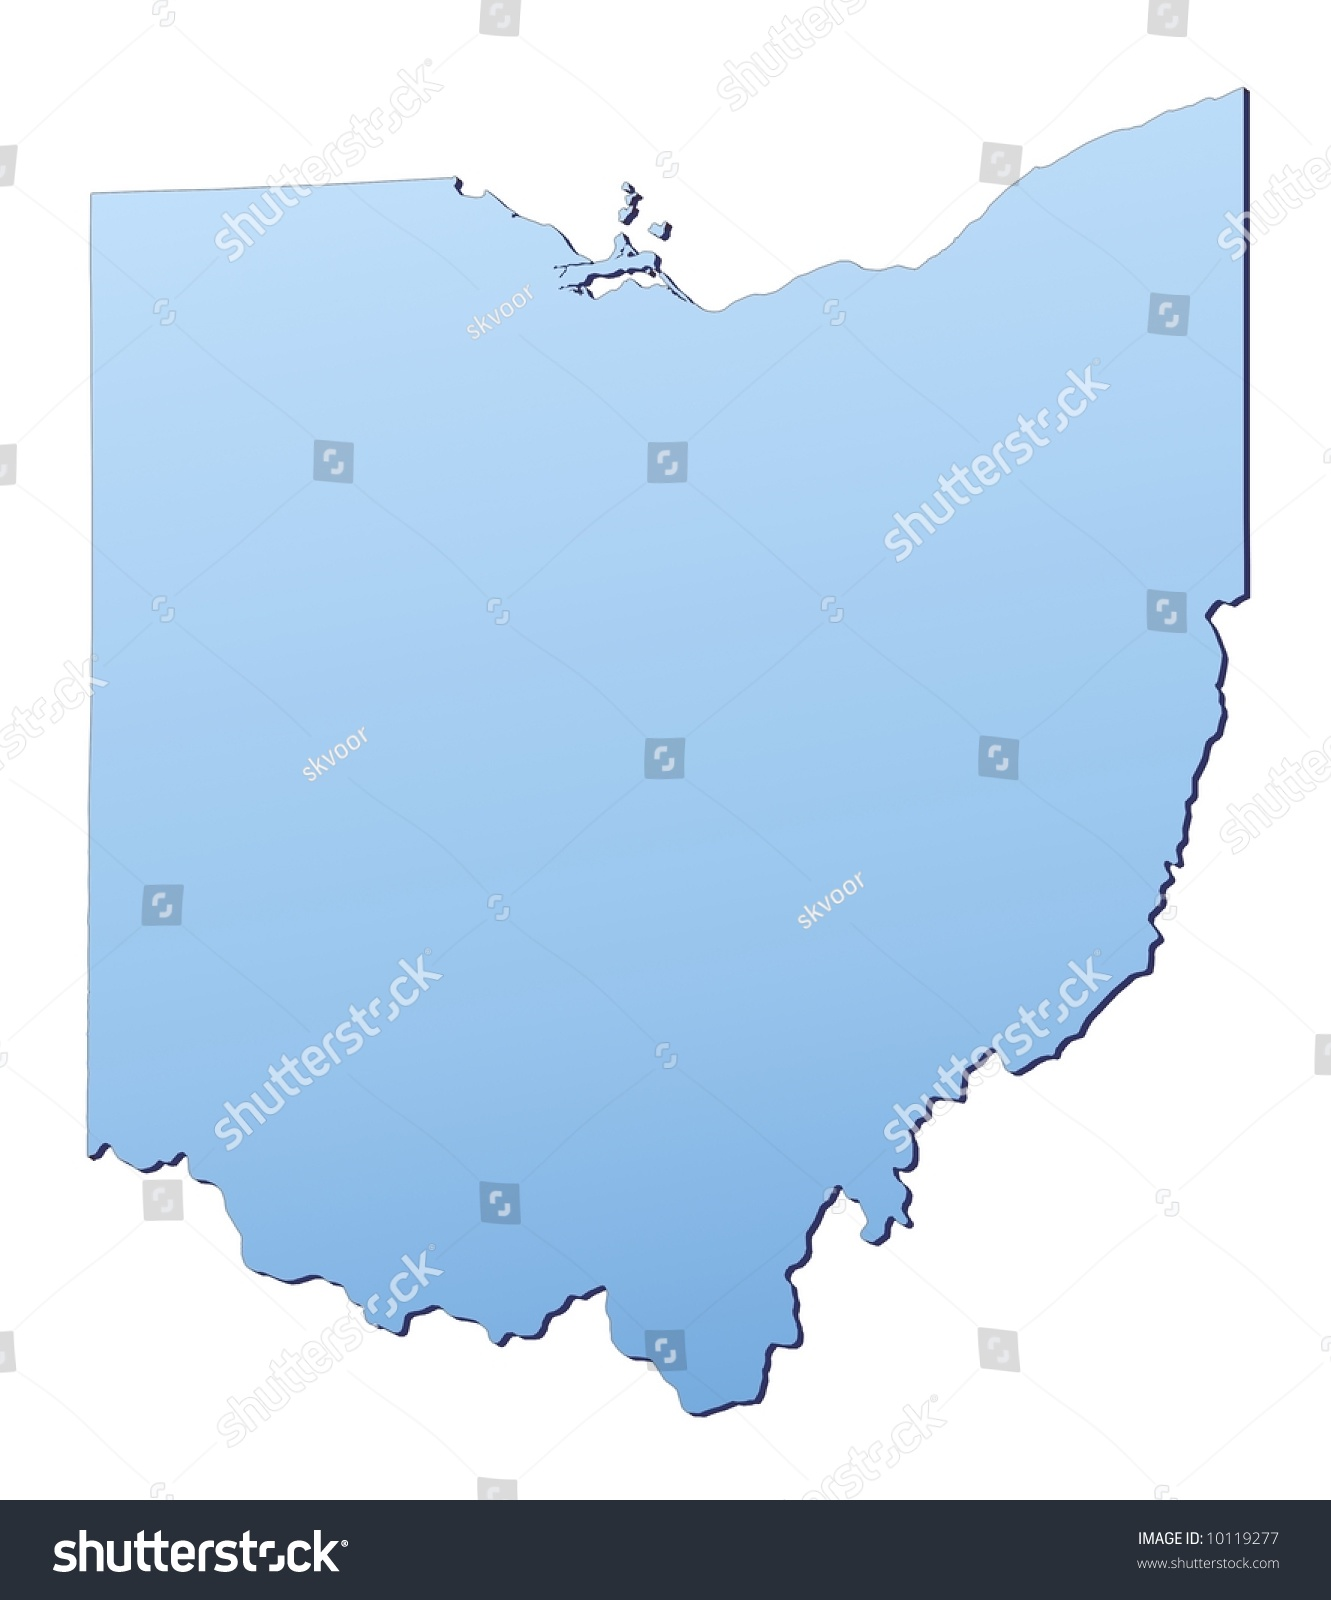 Ohio Digital Vector Map With Counties Major Cities Roads Rivers Usa Map Where Is Ohio